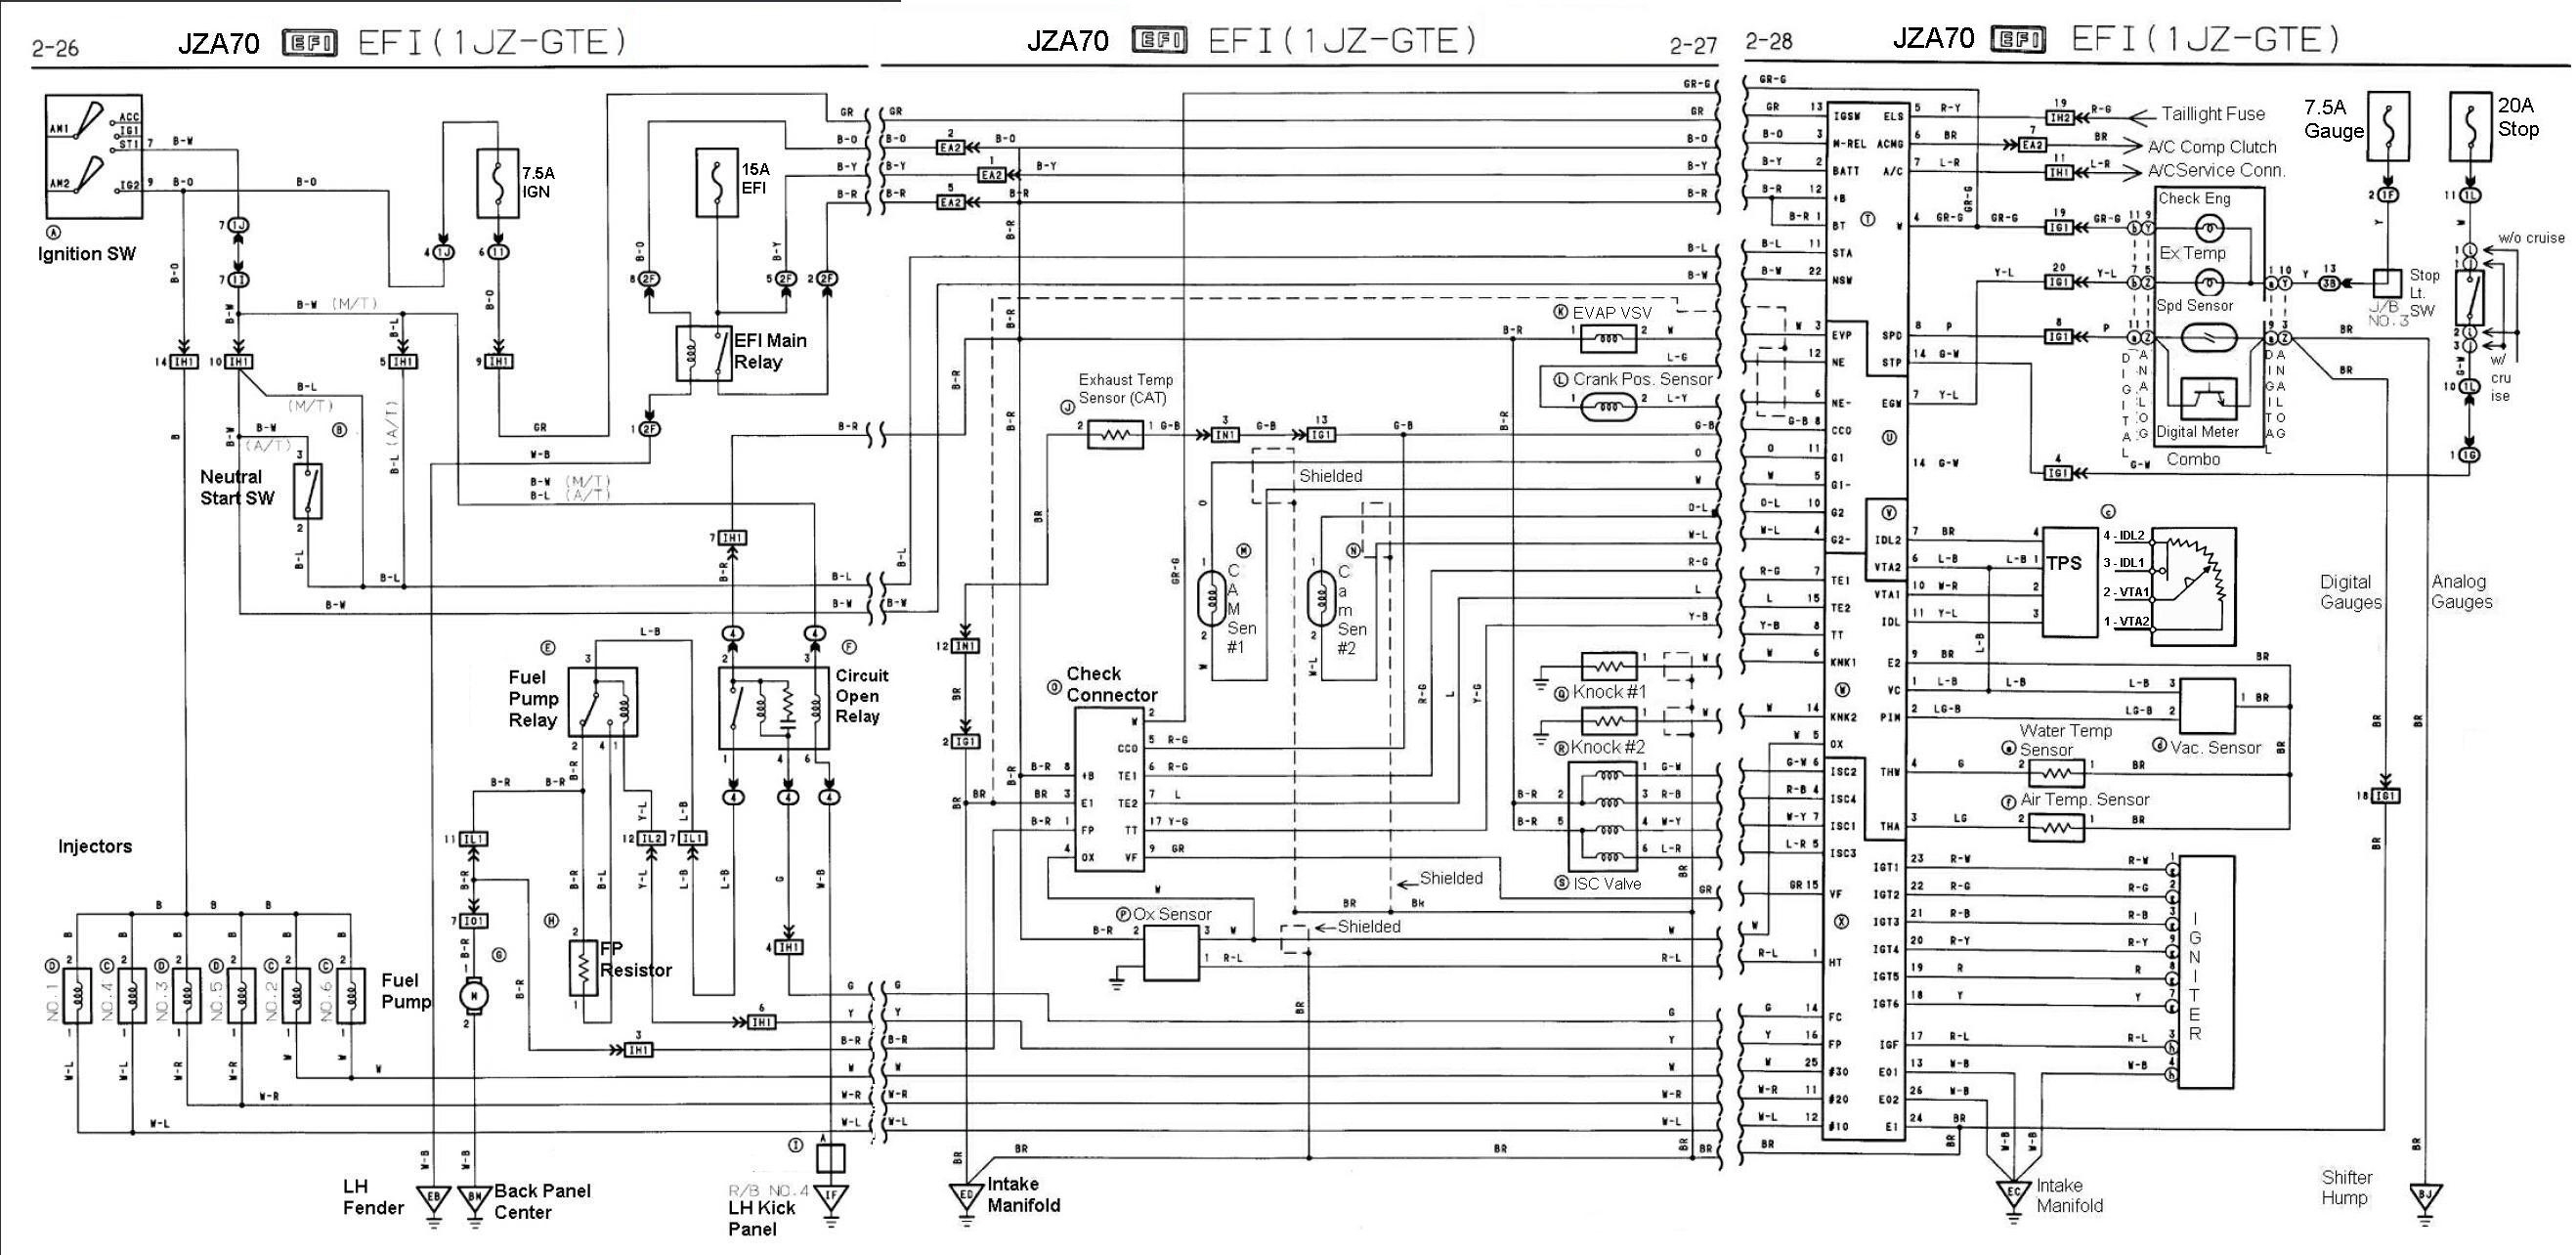 CE167 1jz Vvti Ecu Wiring Diagram | Wiring ResourcesWiring Resources